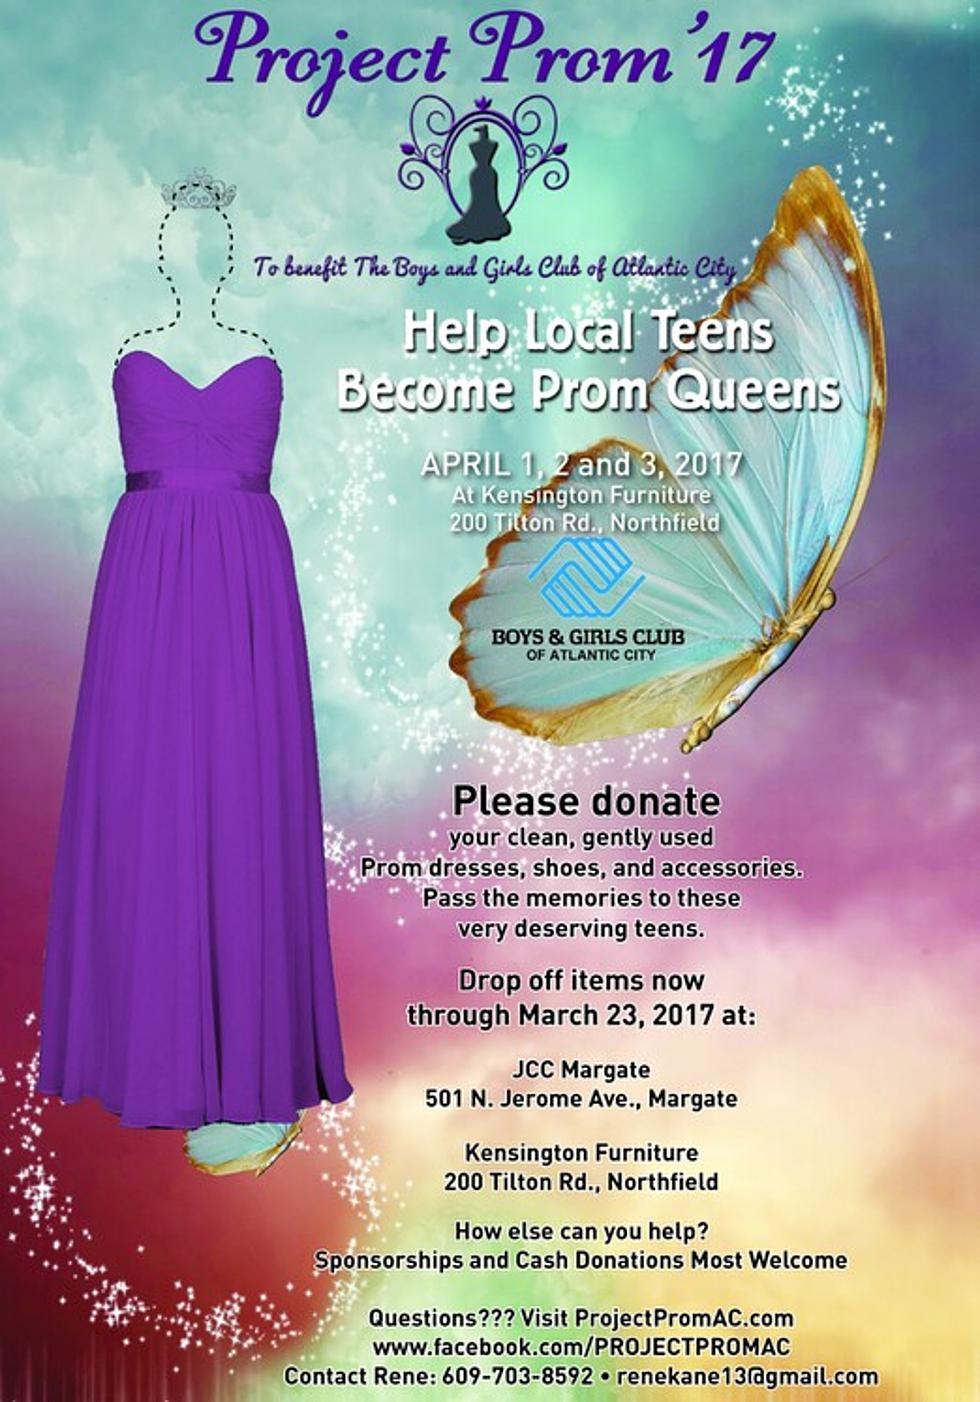 Project Prom \'17 | SoJO Appearance